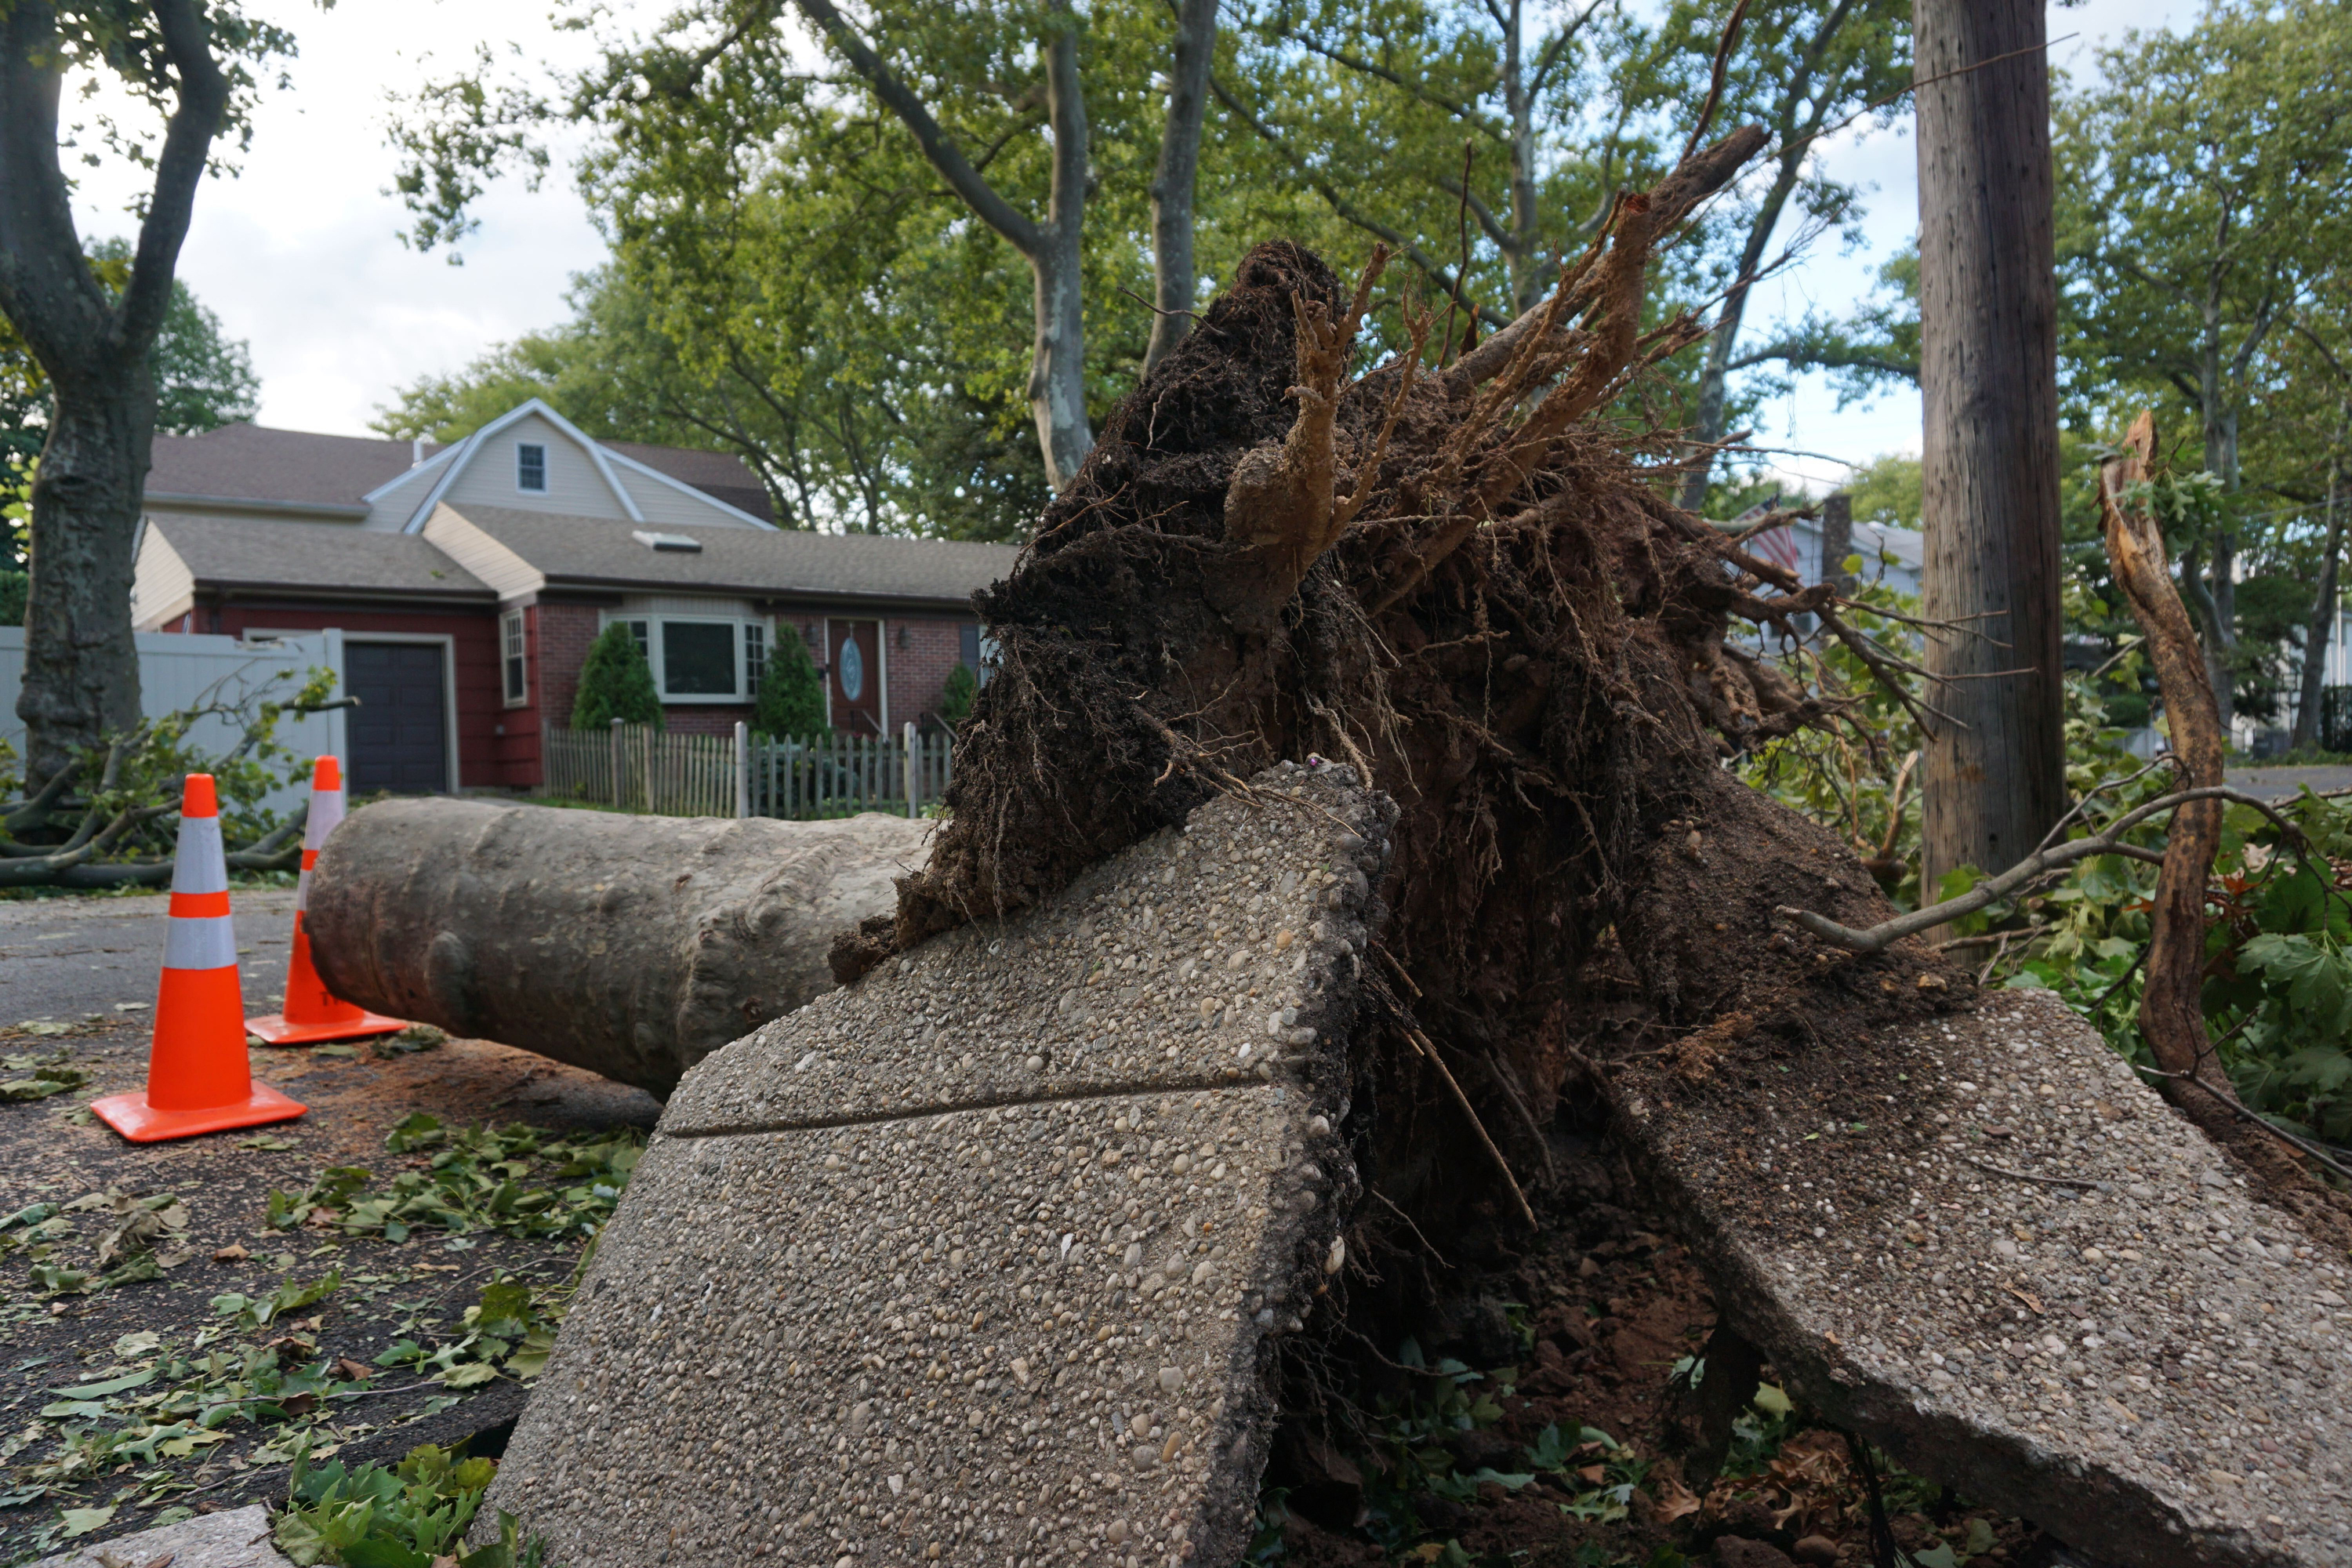 New Dorp beach in Staten Island had a major power outage after Tropical Storm Isaias pummeled the costal neighborhood, Aug. 4, 2020.